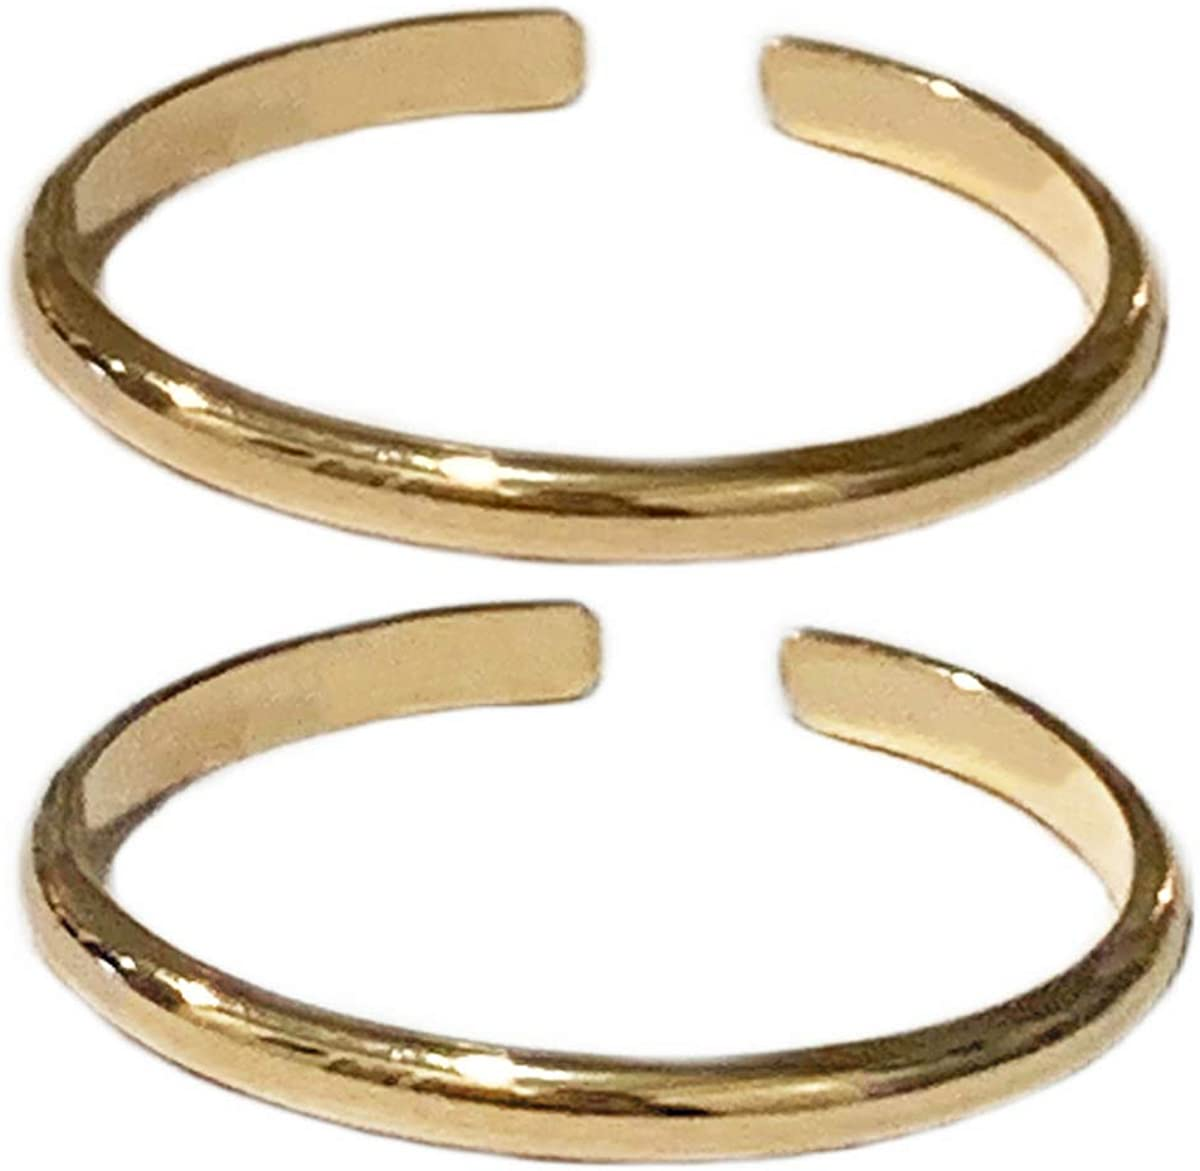 Toe Rings & Things | Set of Two | 1mm Half Round 14k Gold Fill Adjustable Toe Ring | Unisex